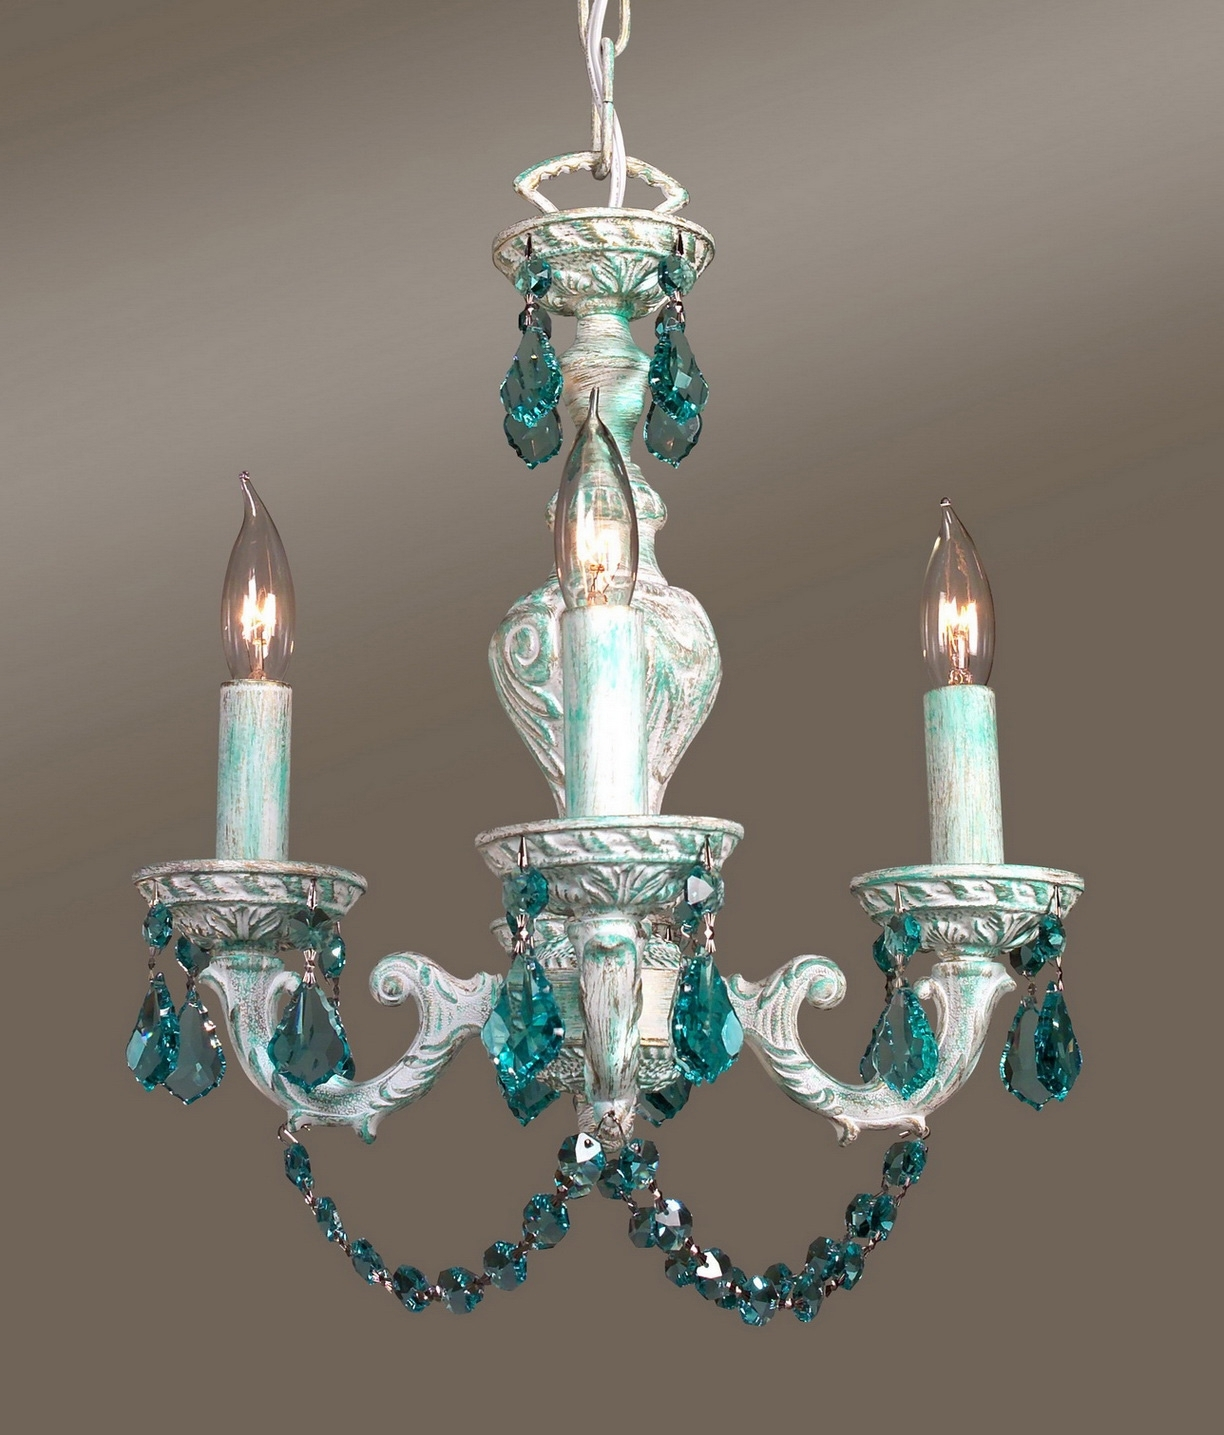 Real Intended For Turquoise Mini Chandeliers (View 12 of 20)